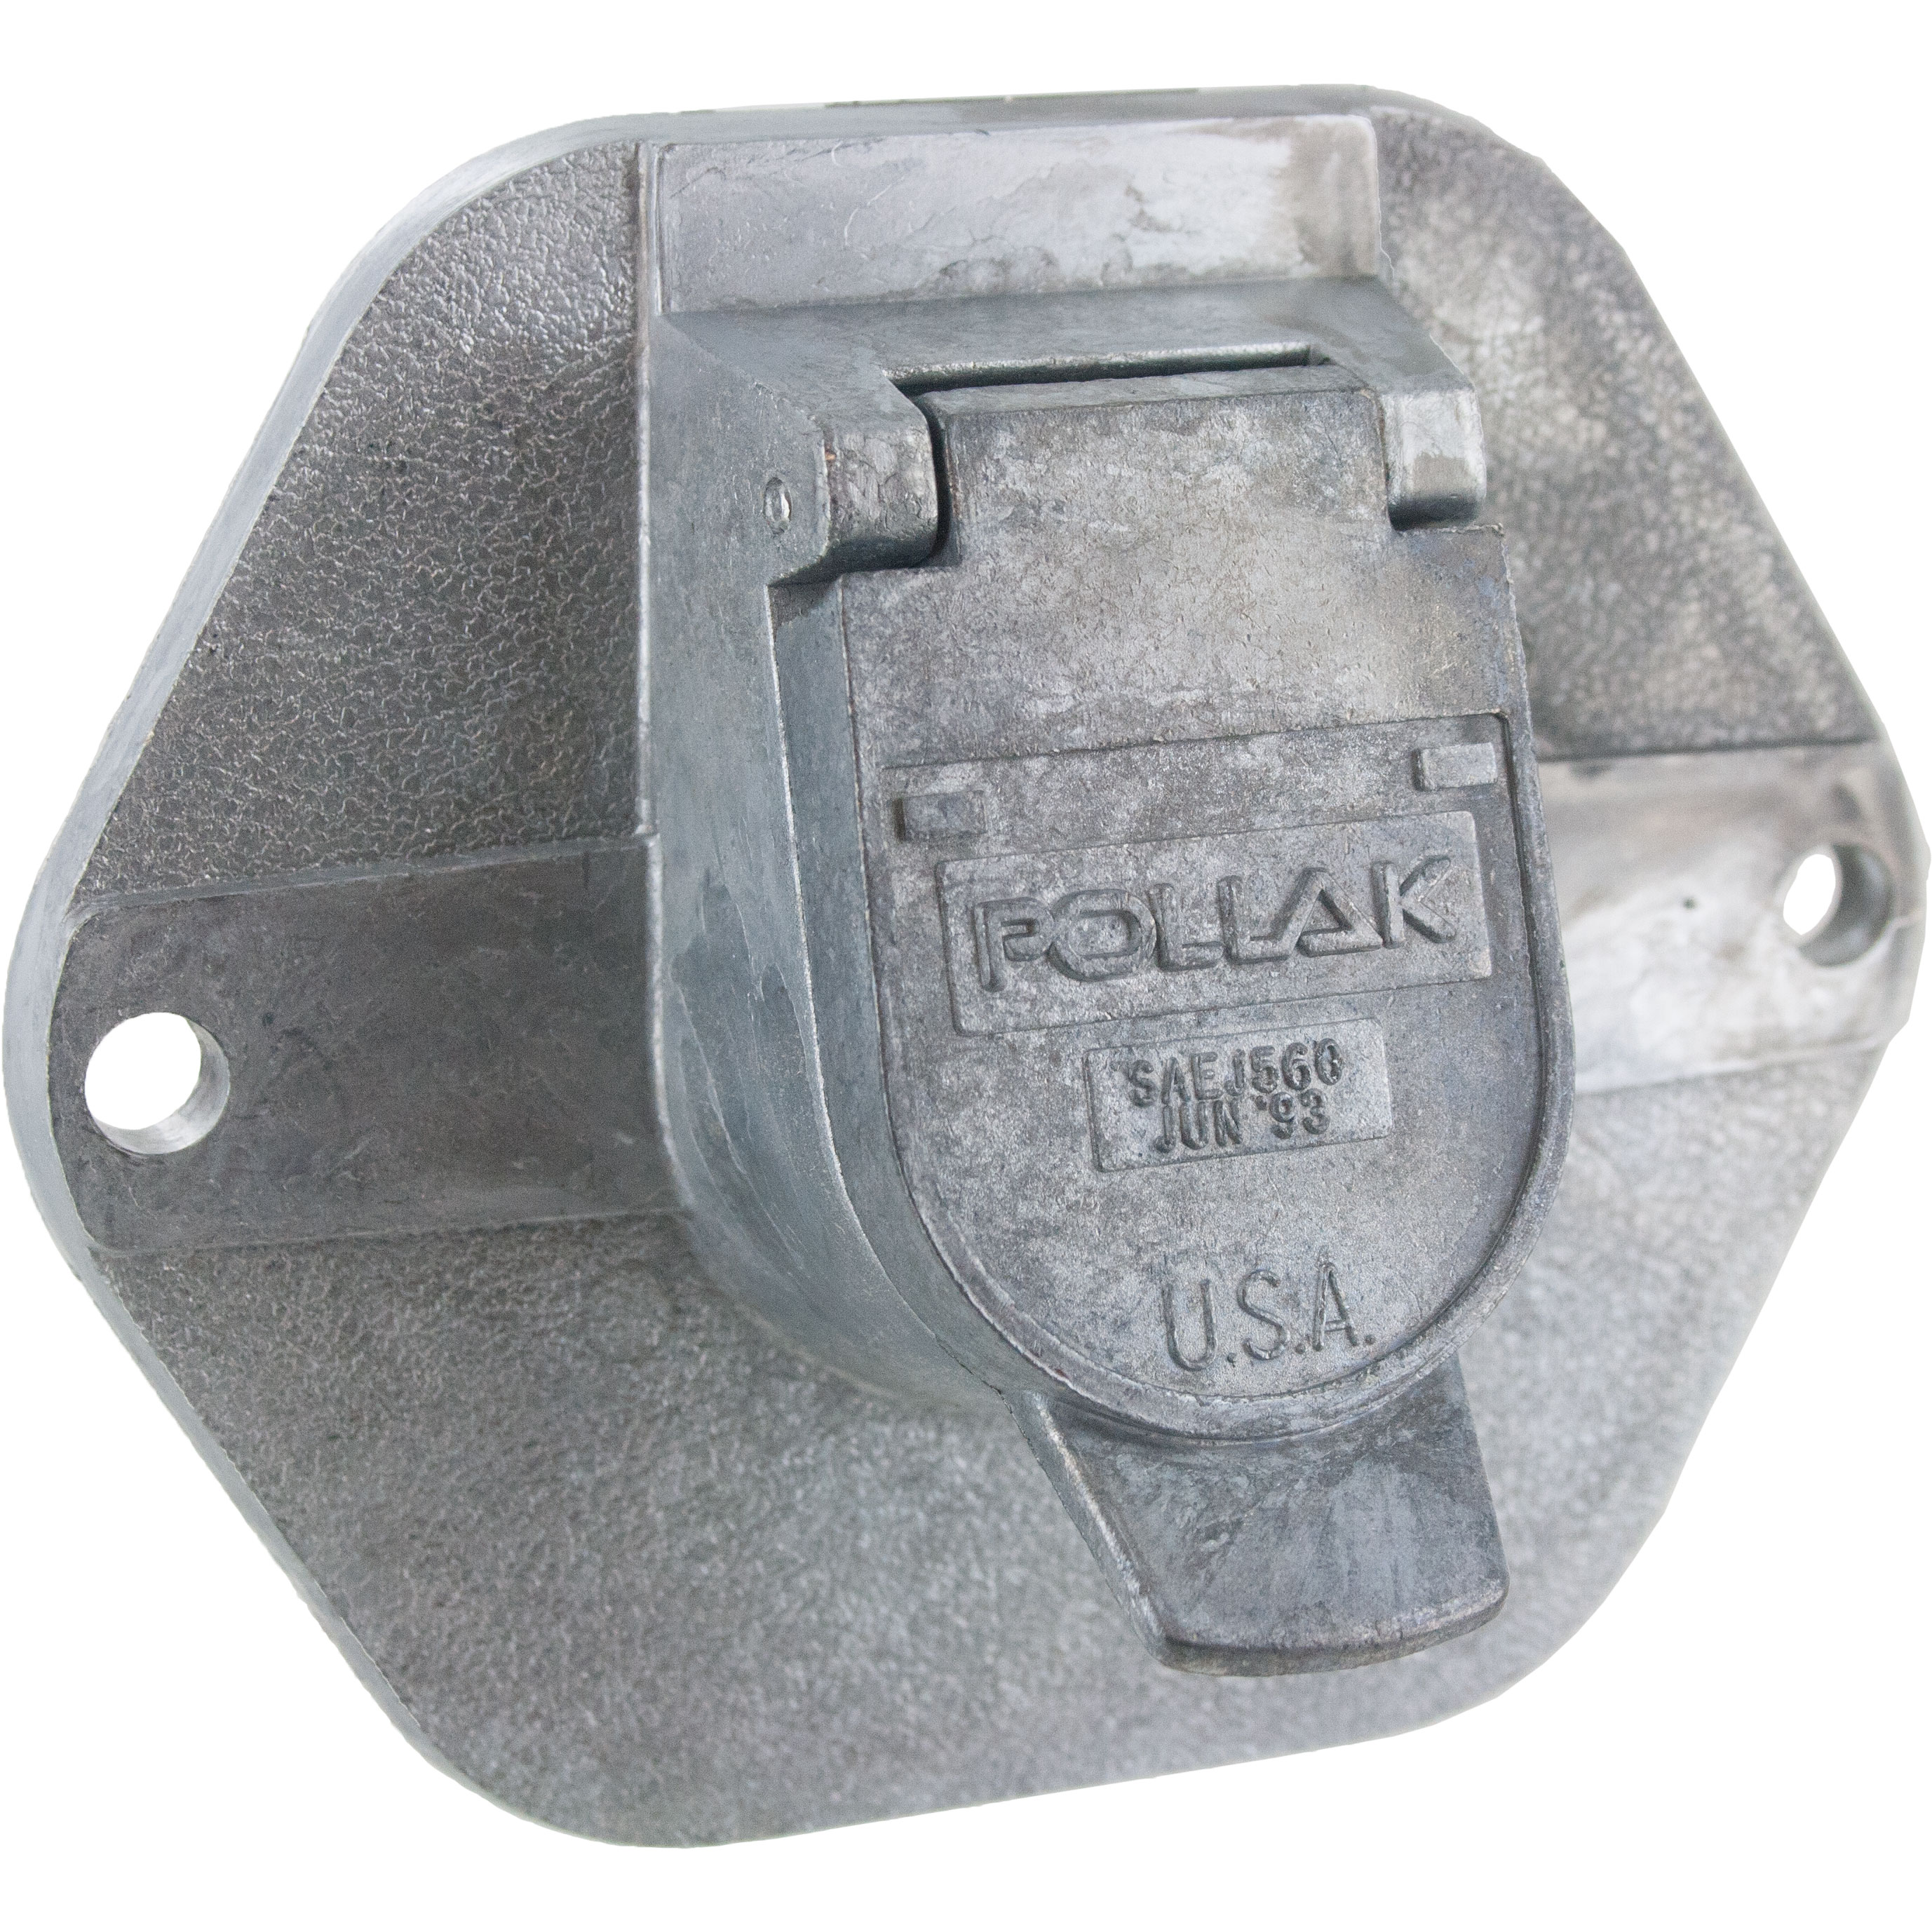 7 Pole Socket With 30 Amp Circuit Breaker Elecdirect Further Pollak Trailer 9 Pin Connector On 4 Wiring